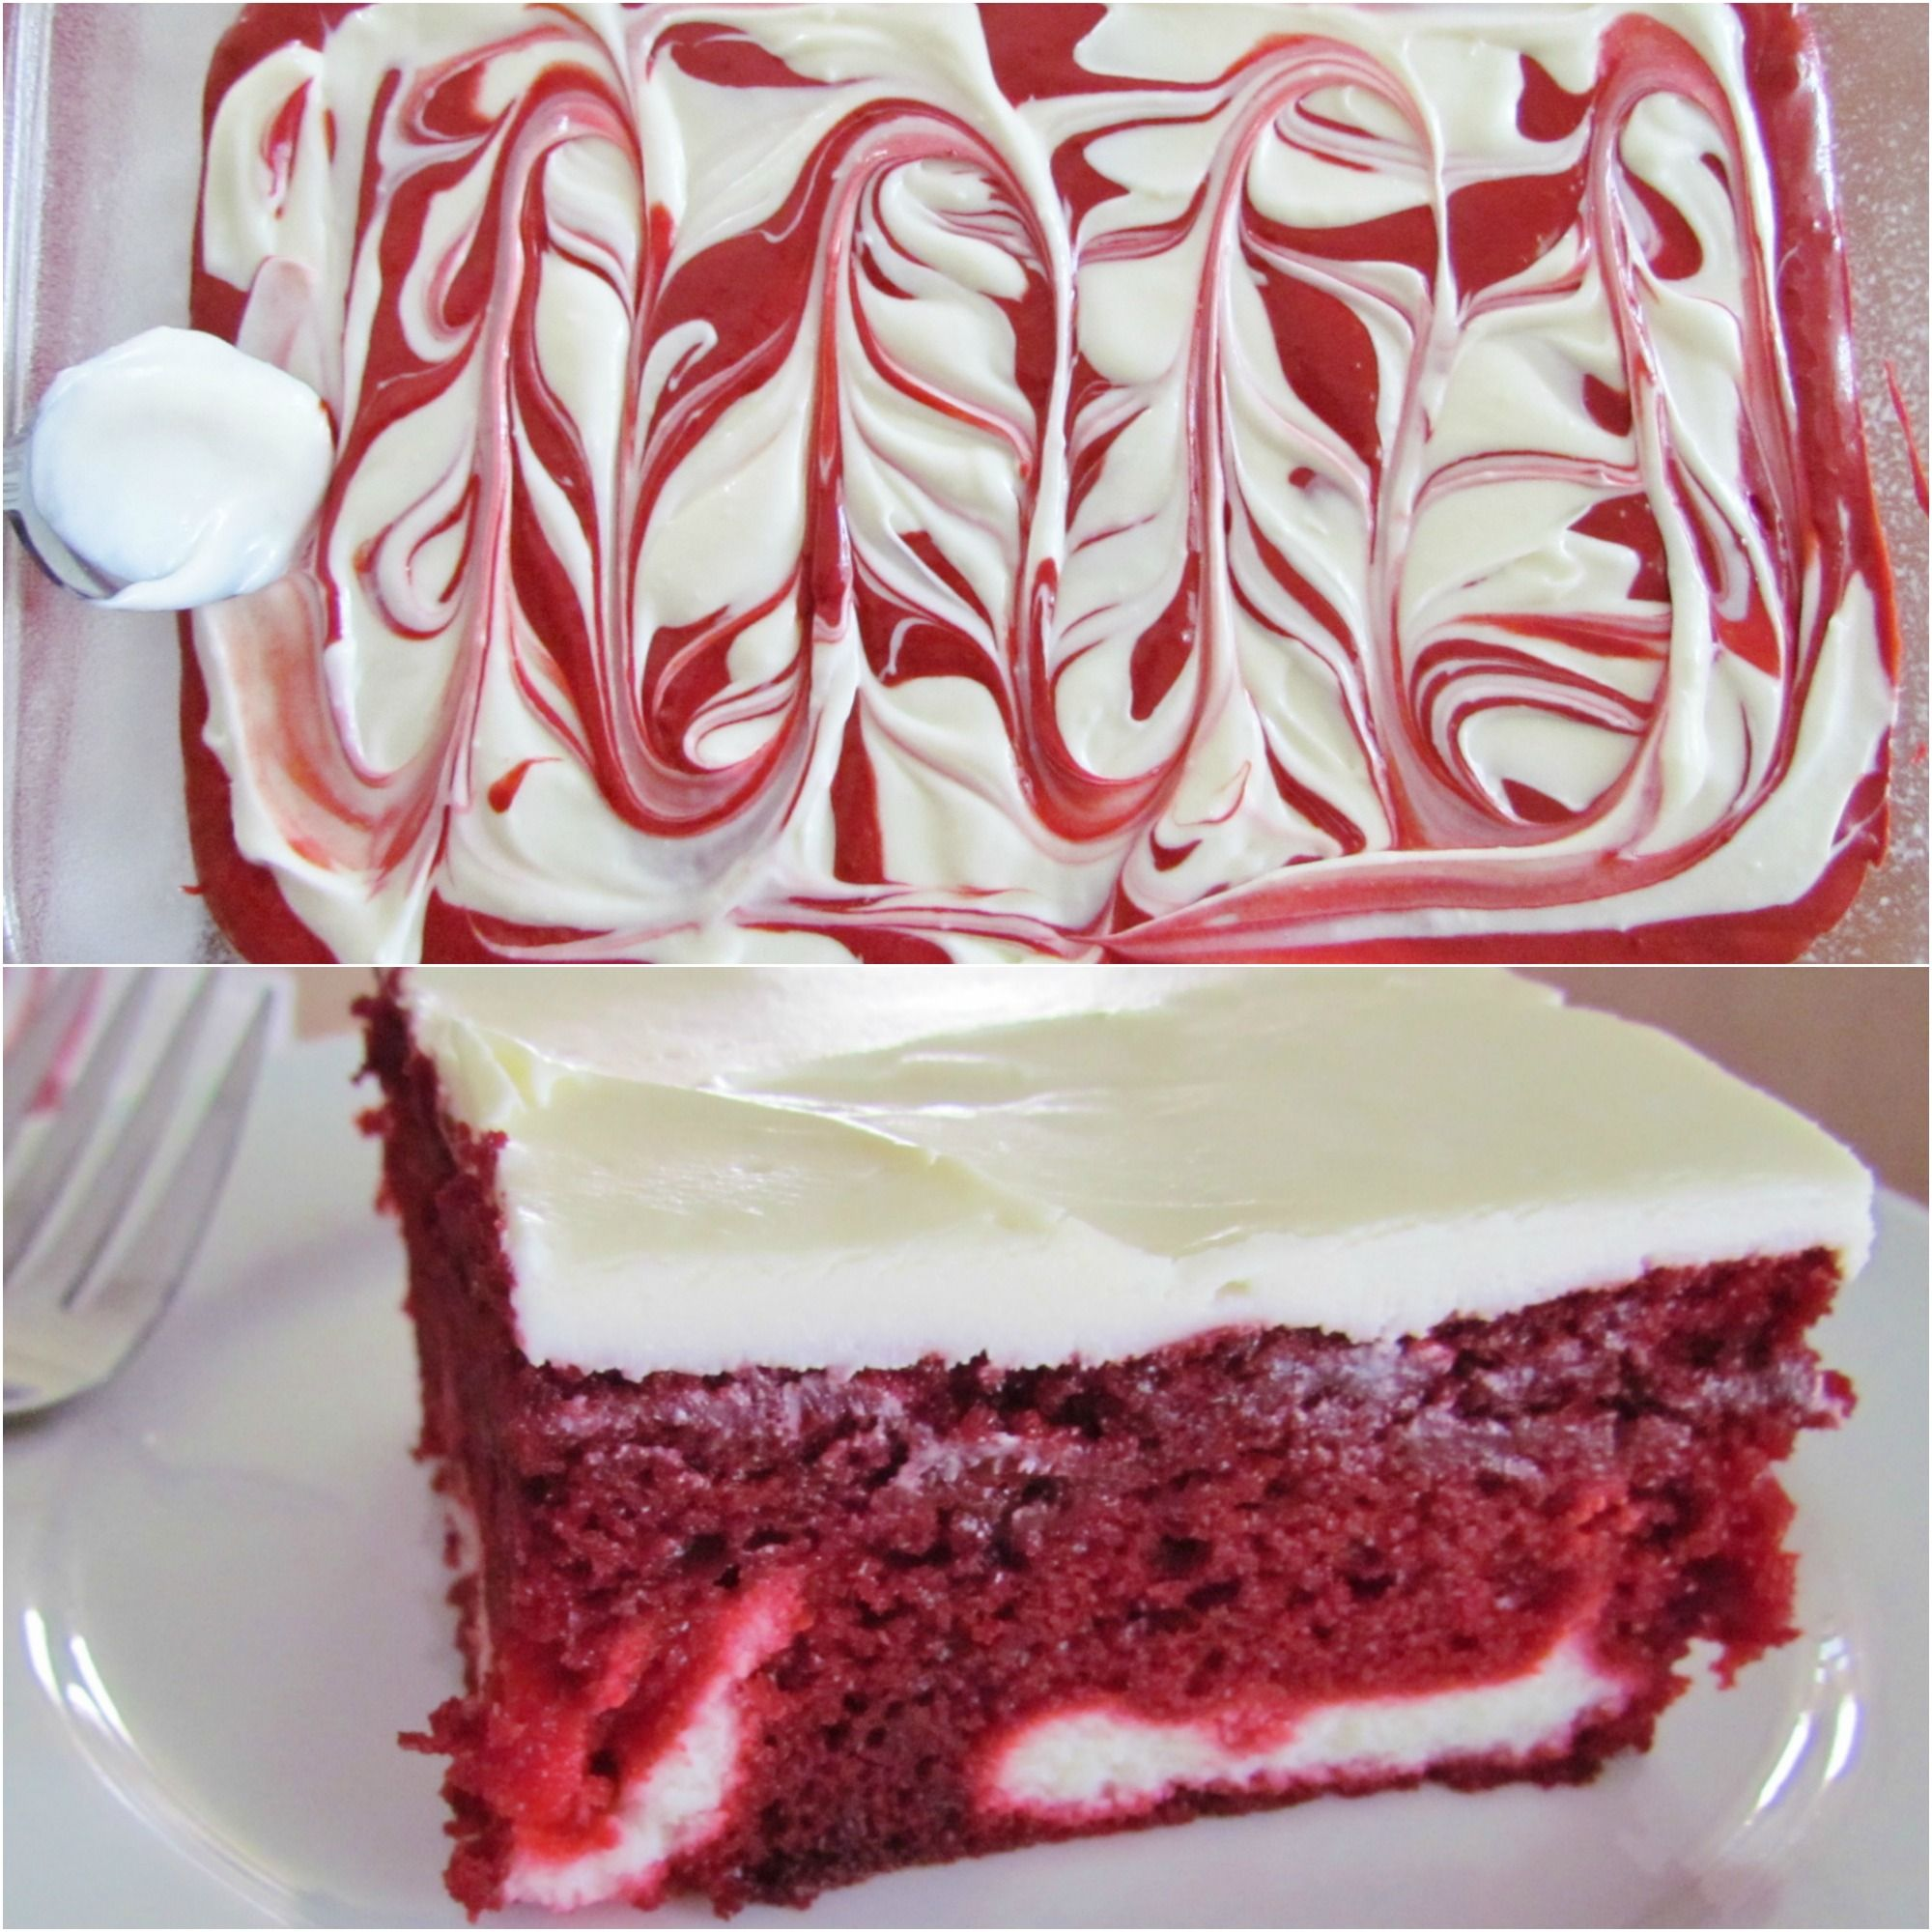 RED VELVET CHEESECAKE CAKE (+Video) | The Country Cook